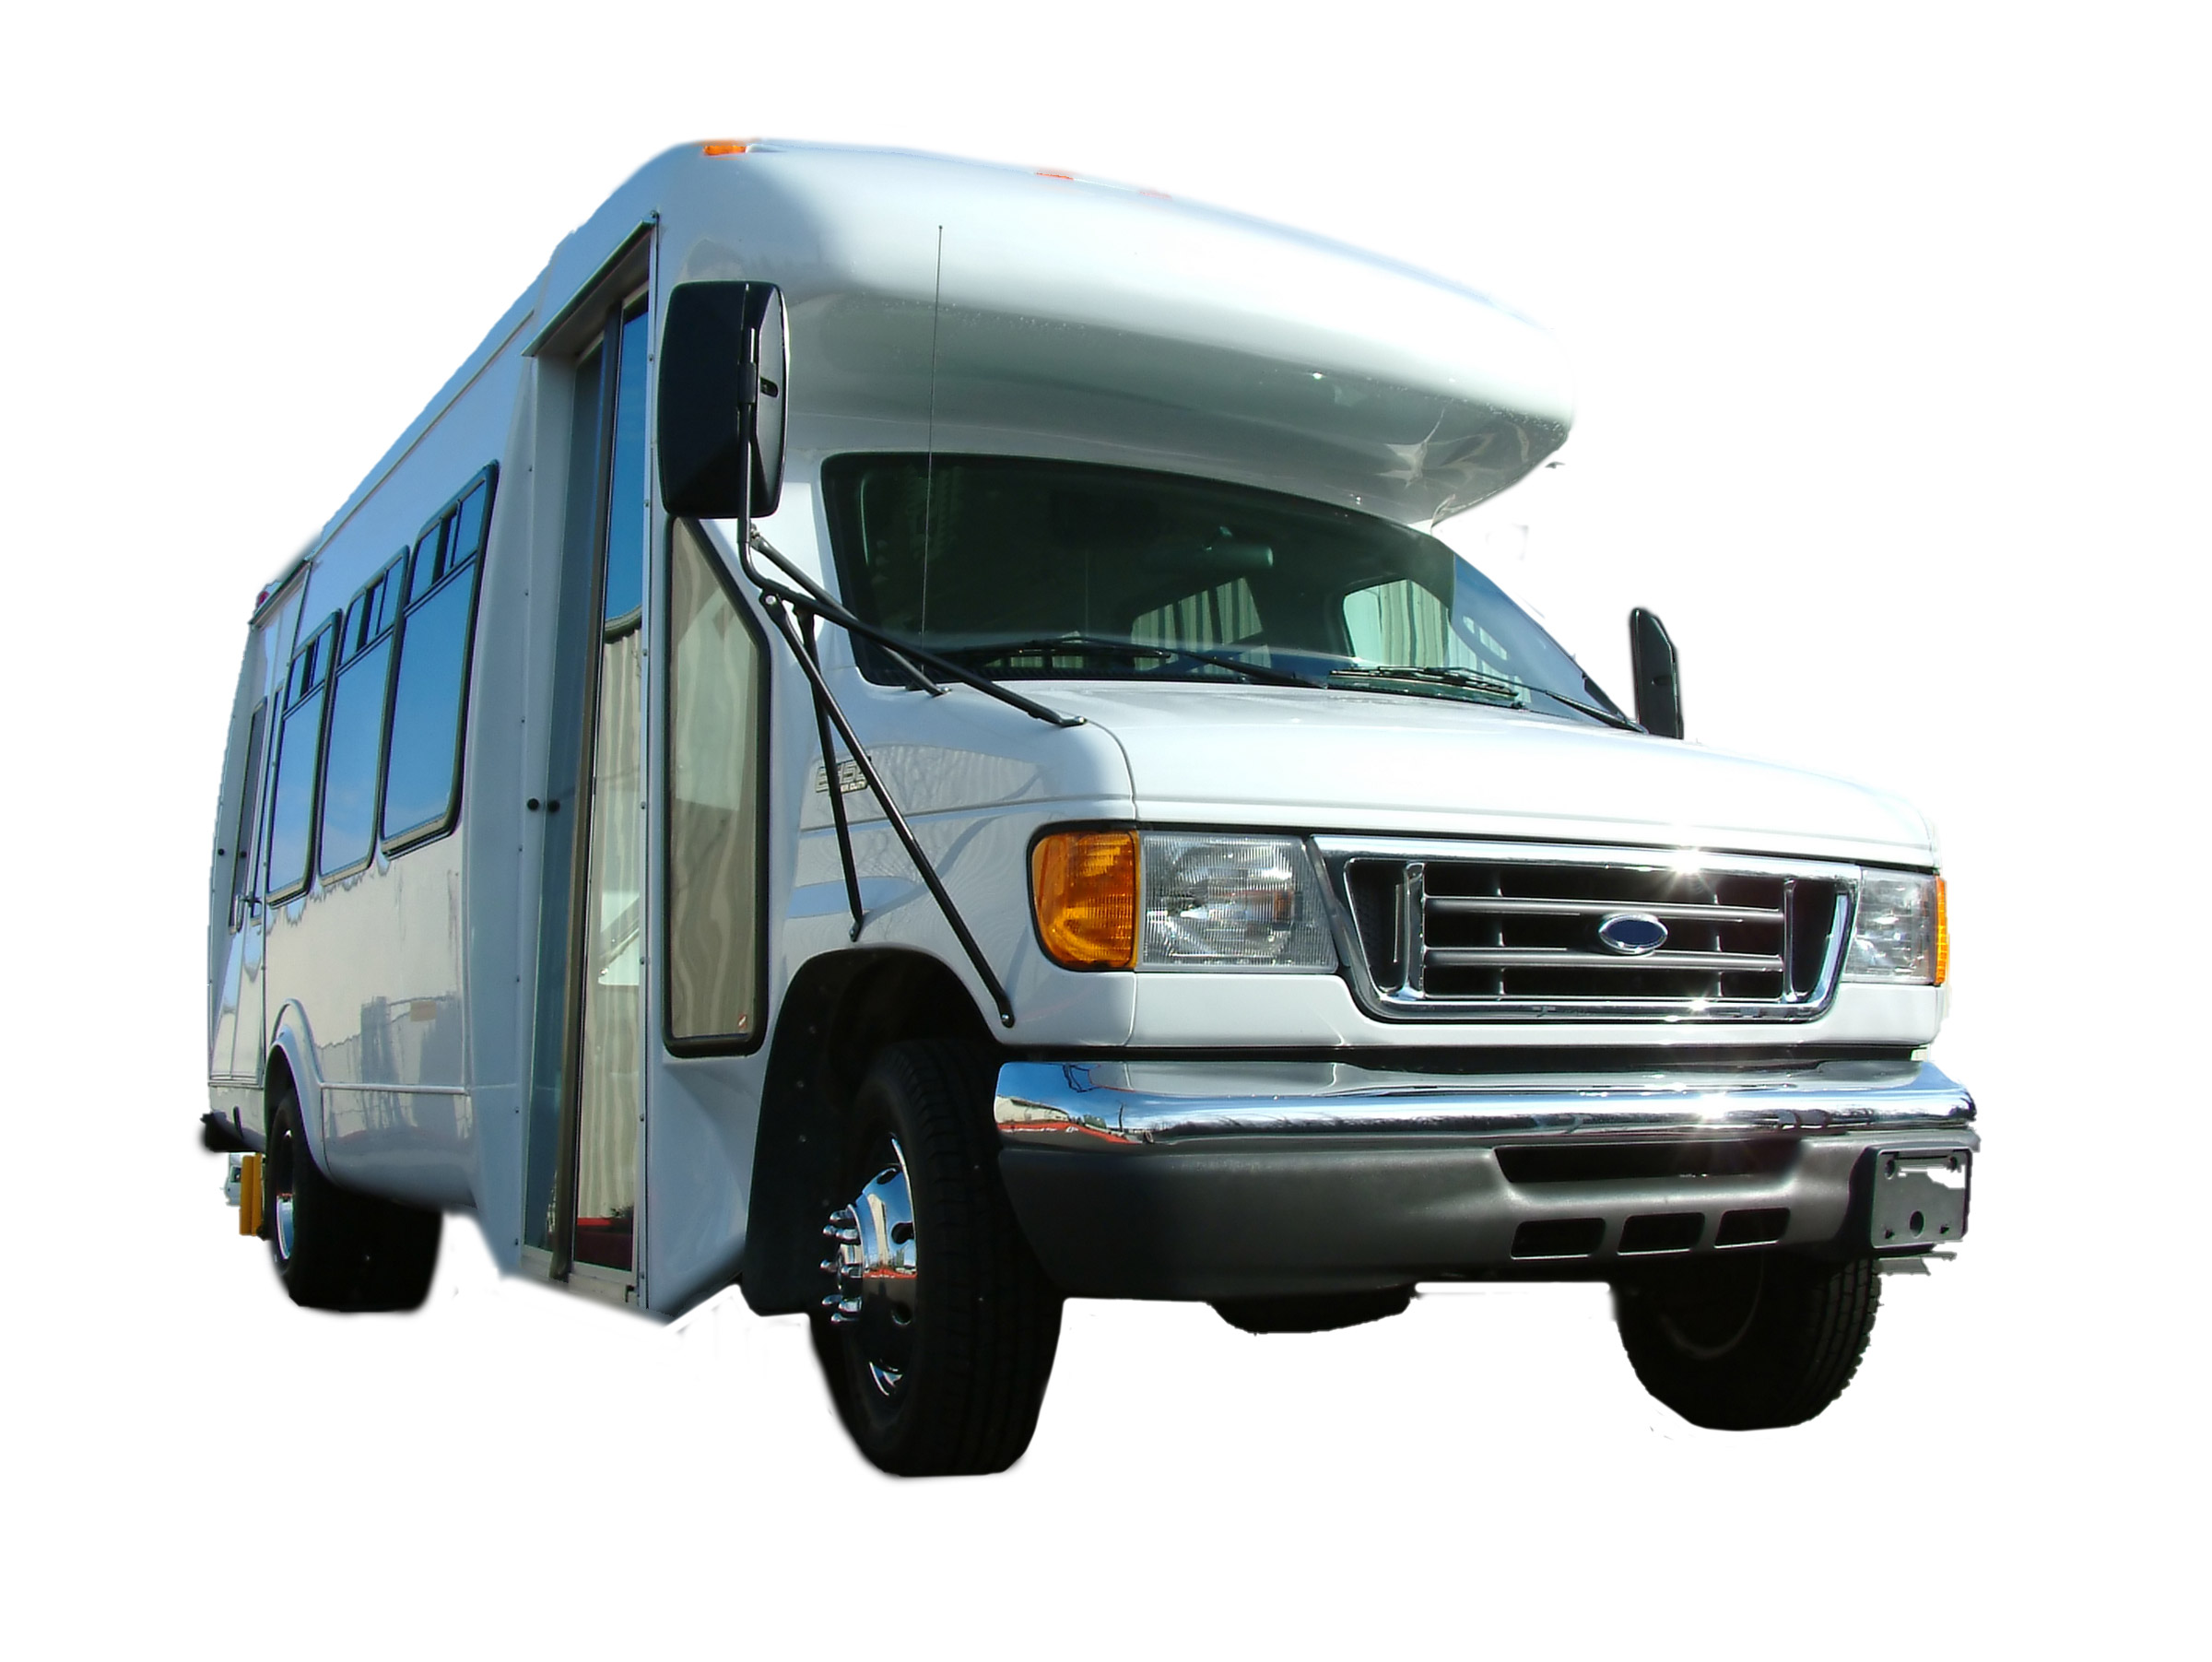 small-bus-172141556